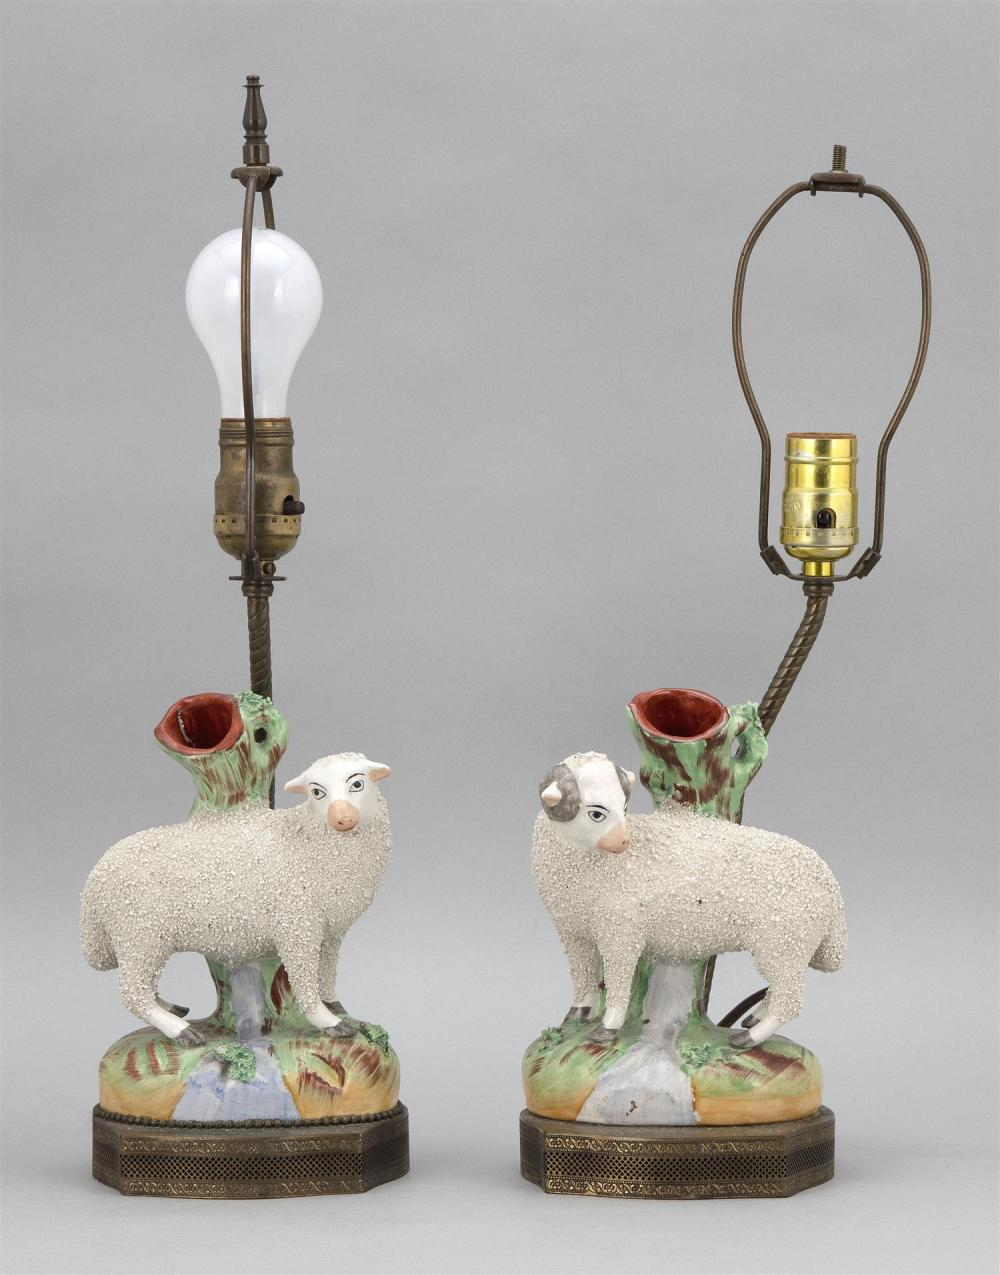 """PAIR OF STAFFORDSHIRE SHEEP VASES A ewe and a ram, with tree stump behind. Mounted as lamps. Total heights 17.5""""."""